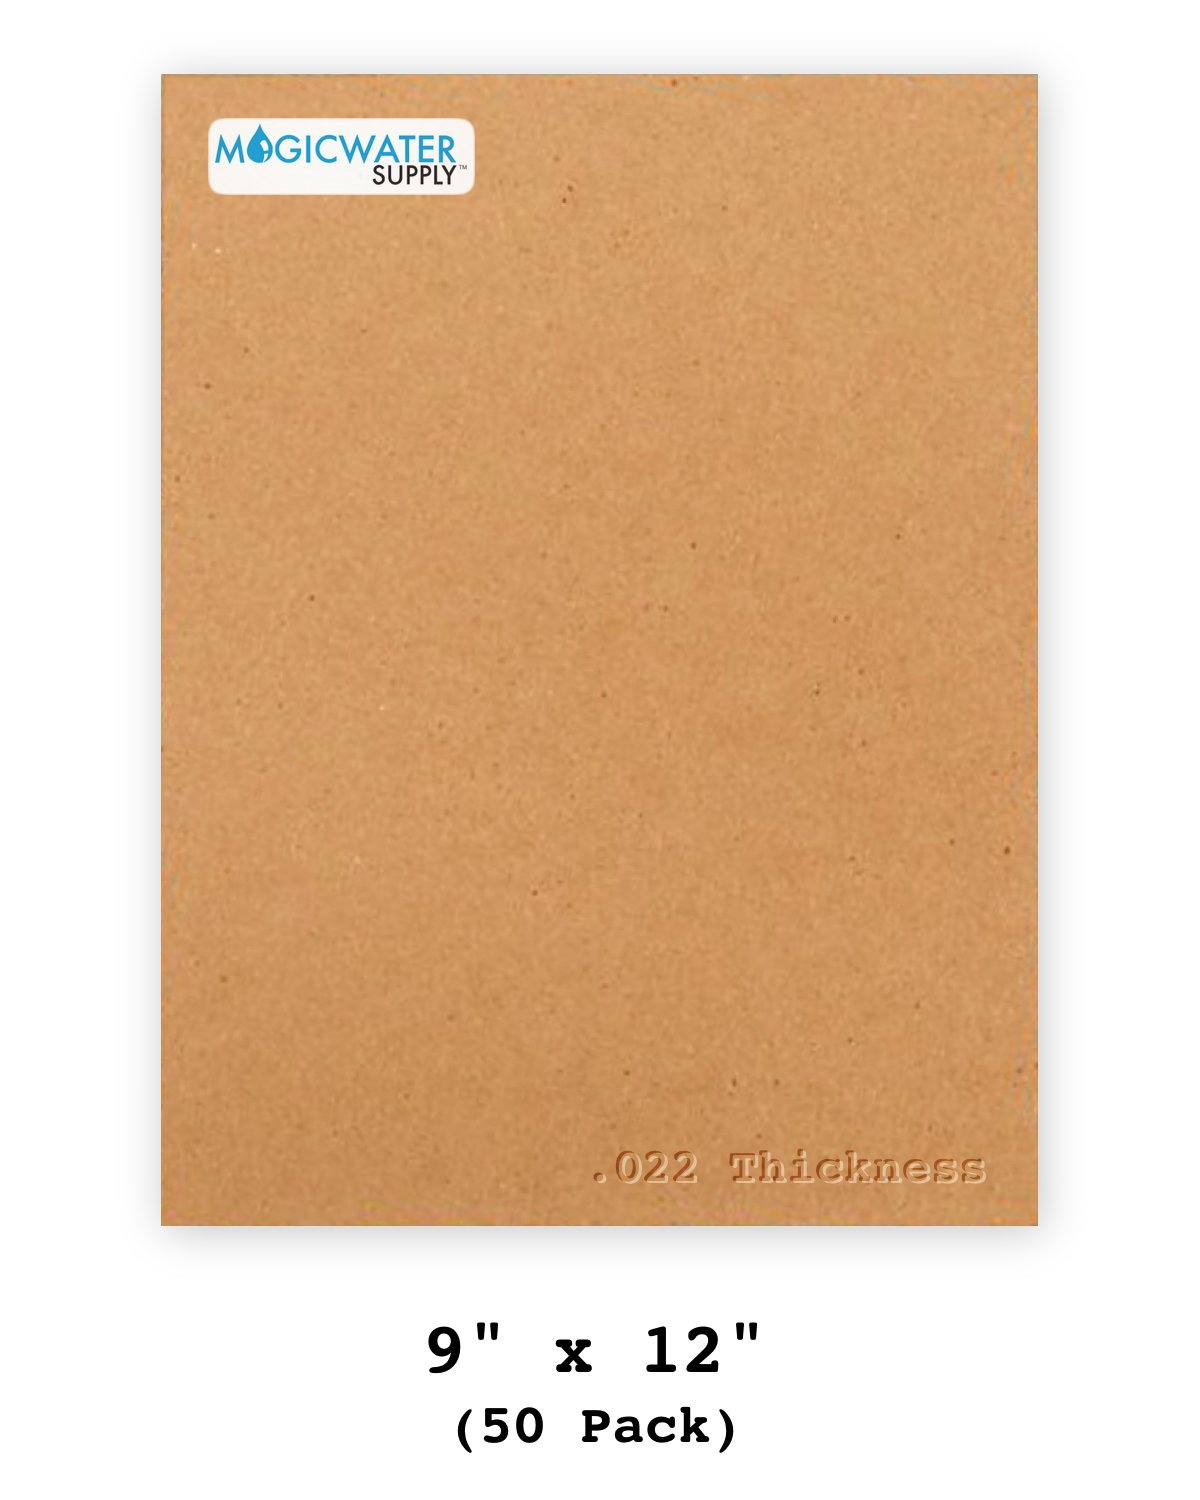 50 Sheets Chipboard 9 x 12 inch - 22pt (point) Light Weight Brown Kraft Cardboard Scrapbook Sheets & Picture Frame Backing (.022 Caliper Thick) Paper Board | MagicWater Supply MWS